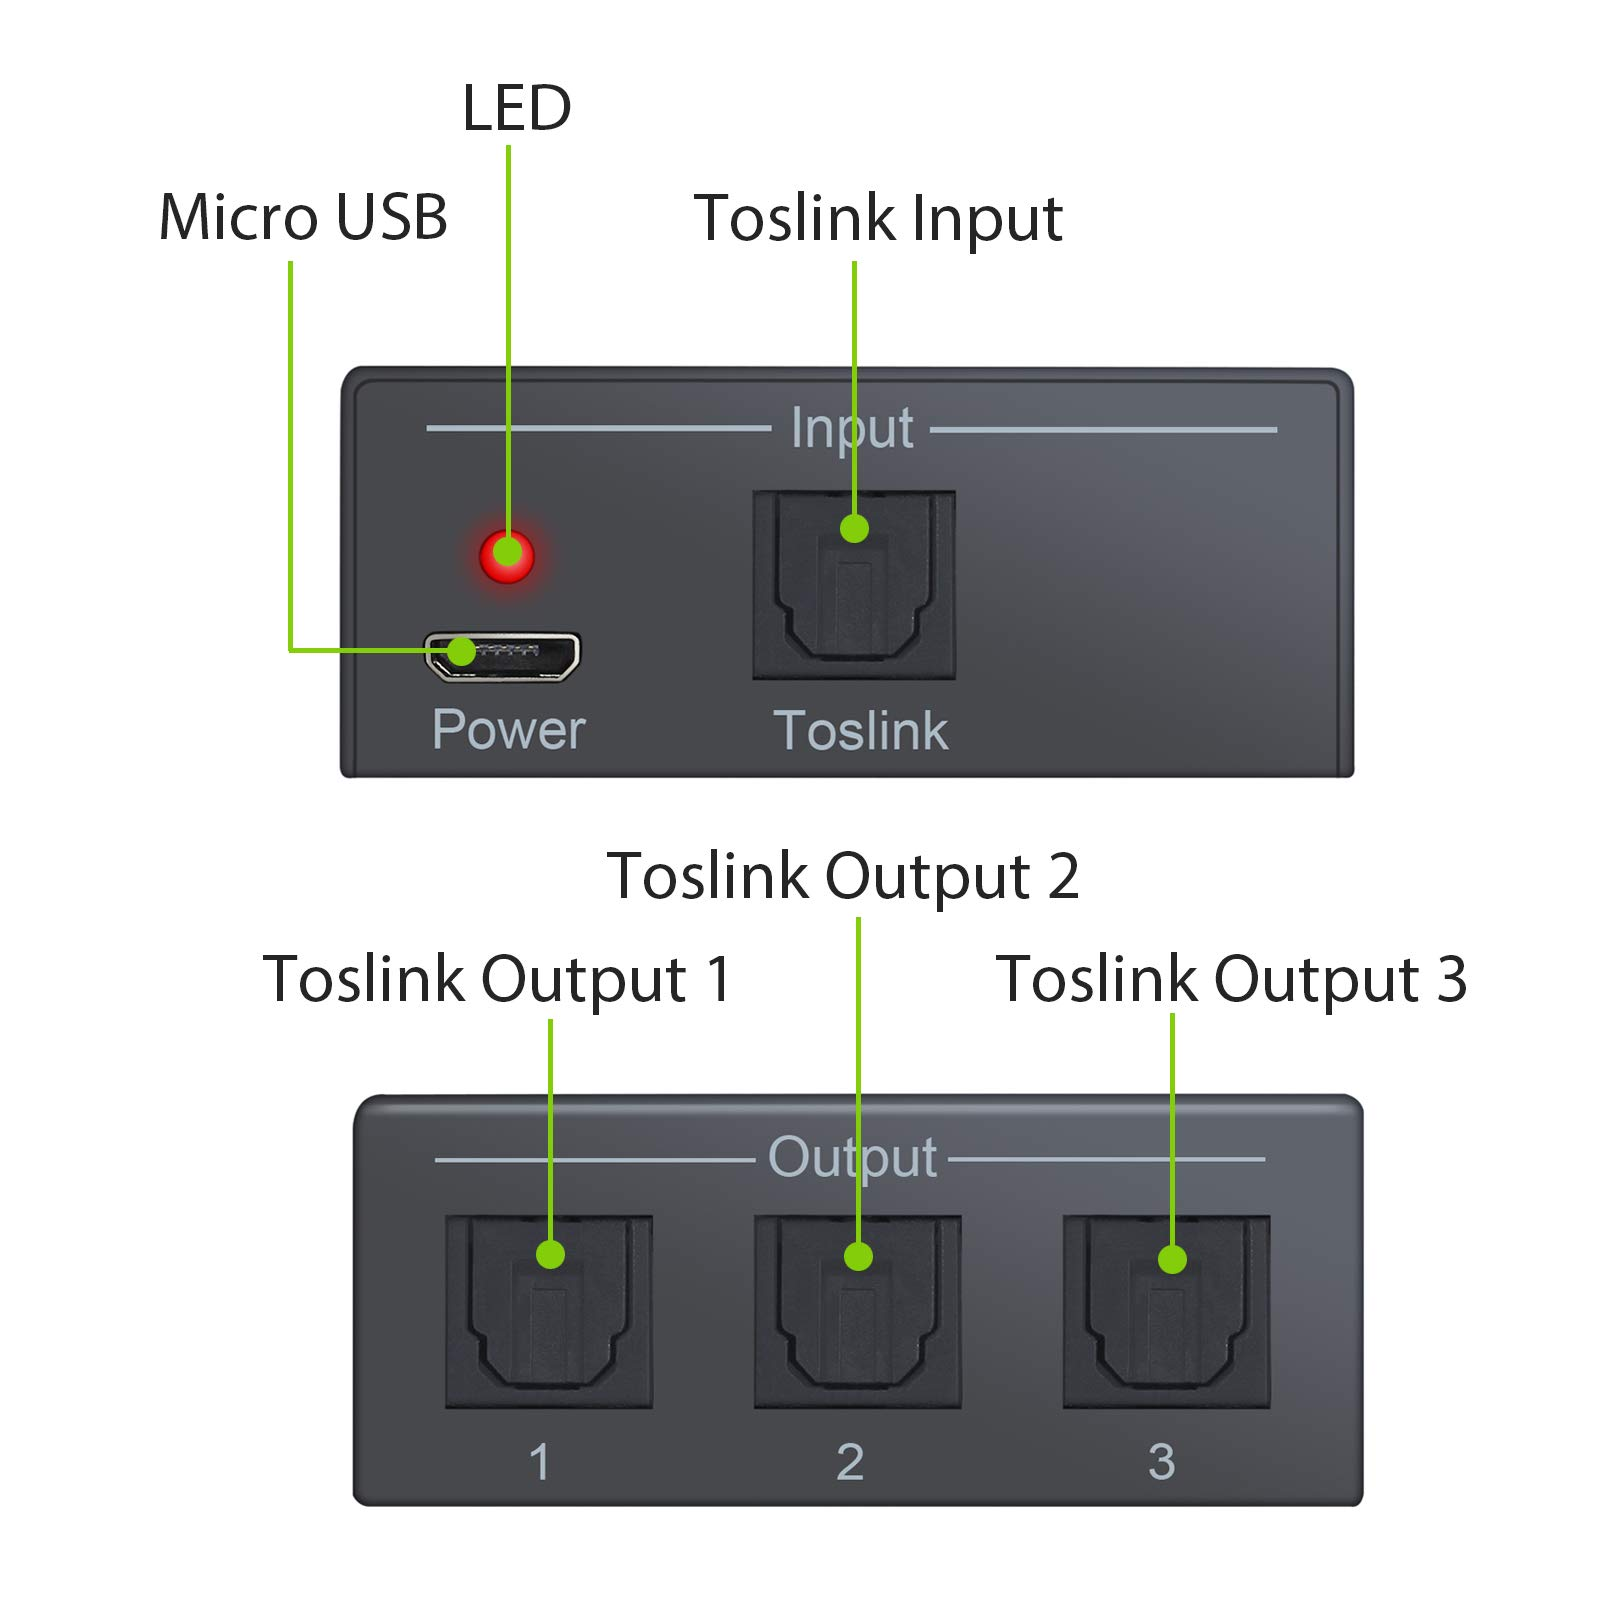 LiNKFOR 3 Port Toslink Splitter with 4pcs 6.5ft Optical Cable Digital Optical Audio Splitter Aluminum Alloy SPDIF Toslink Fiber Audio Splitter 1 in 3 Out Support Dolby-AC3 DTS for PS3 Xbox DVD HDTV by LiNKFOR (Image #4)